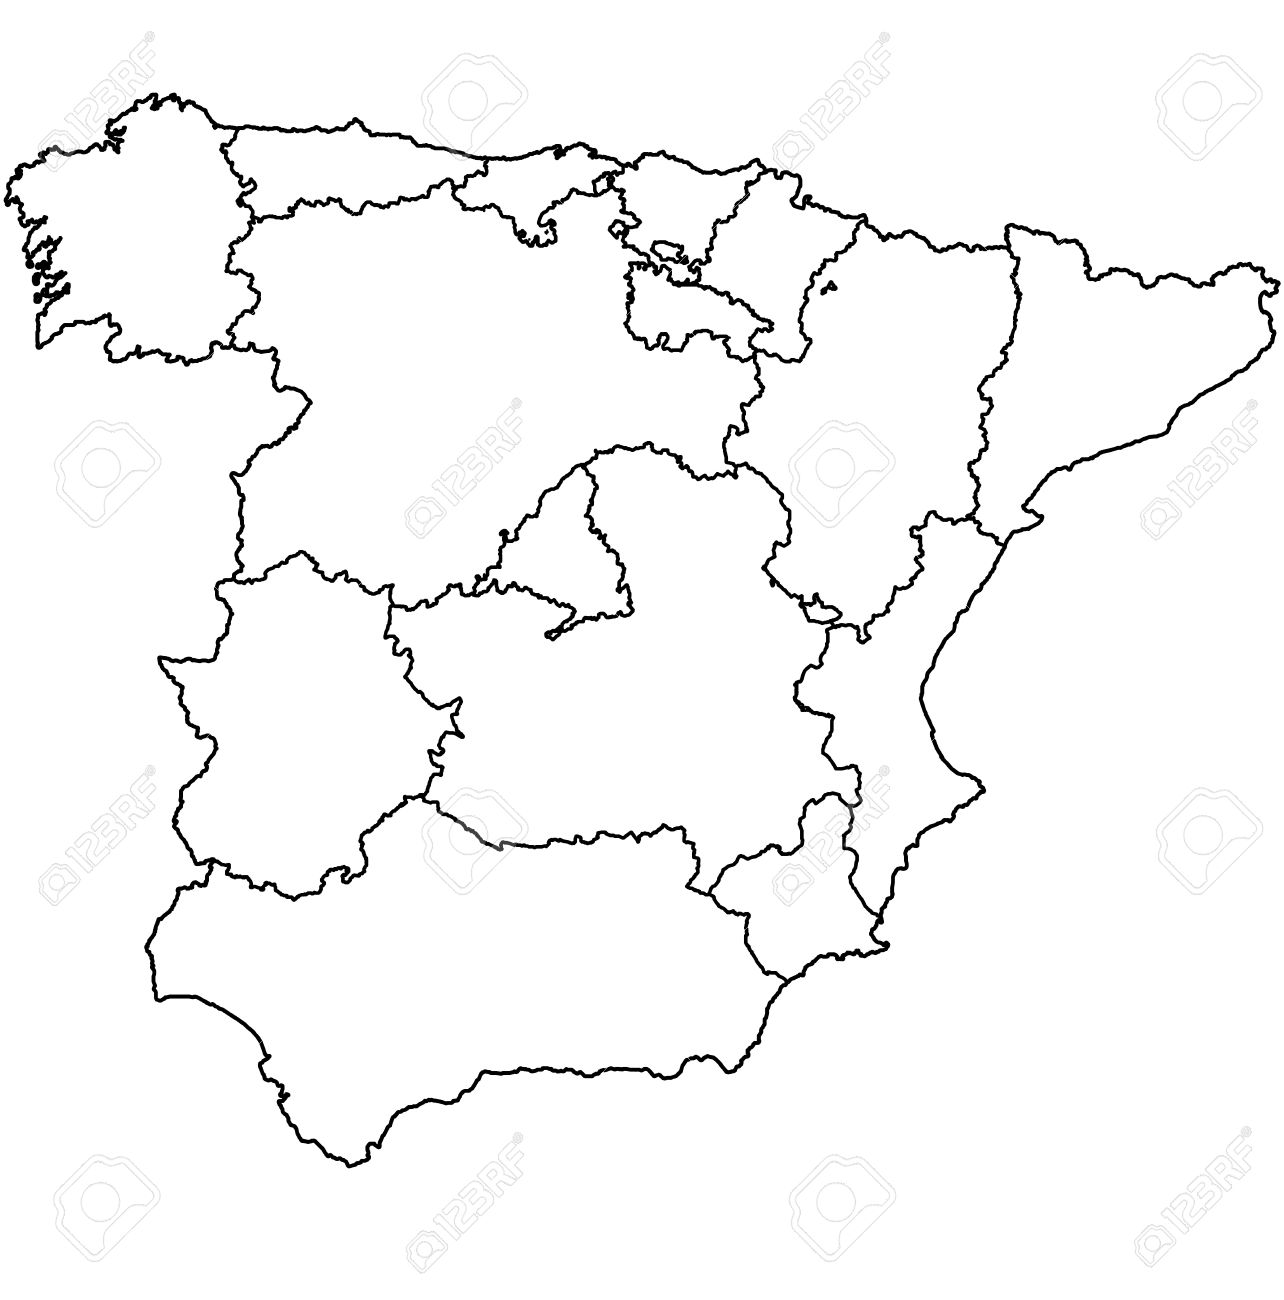 regions of spain on administration map with borders Stock Photo - 16551201